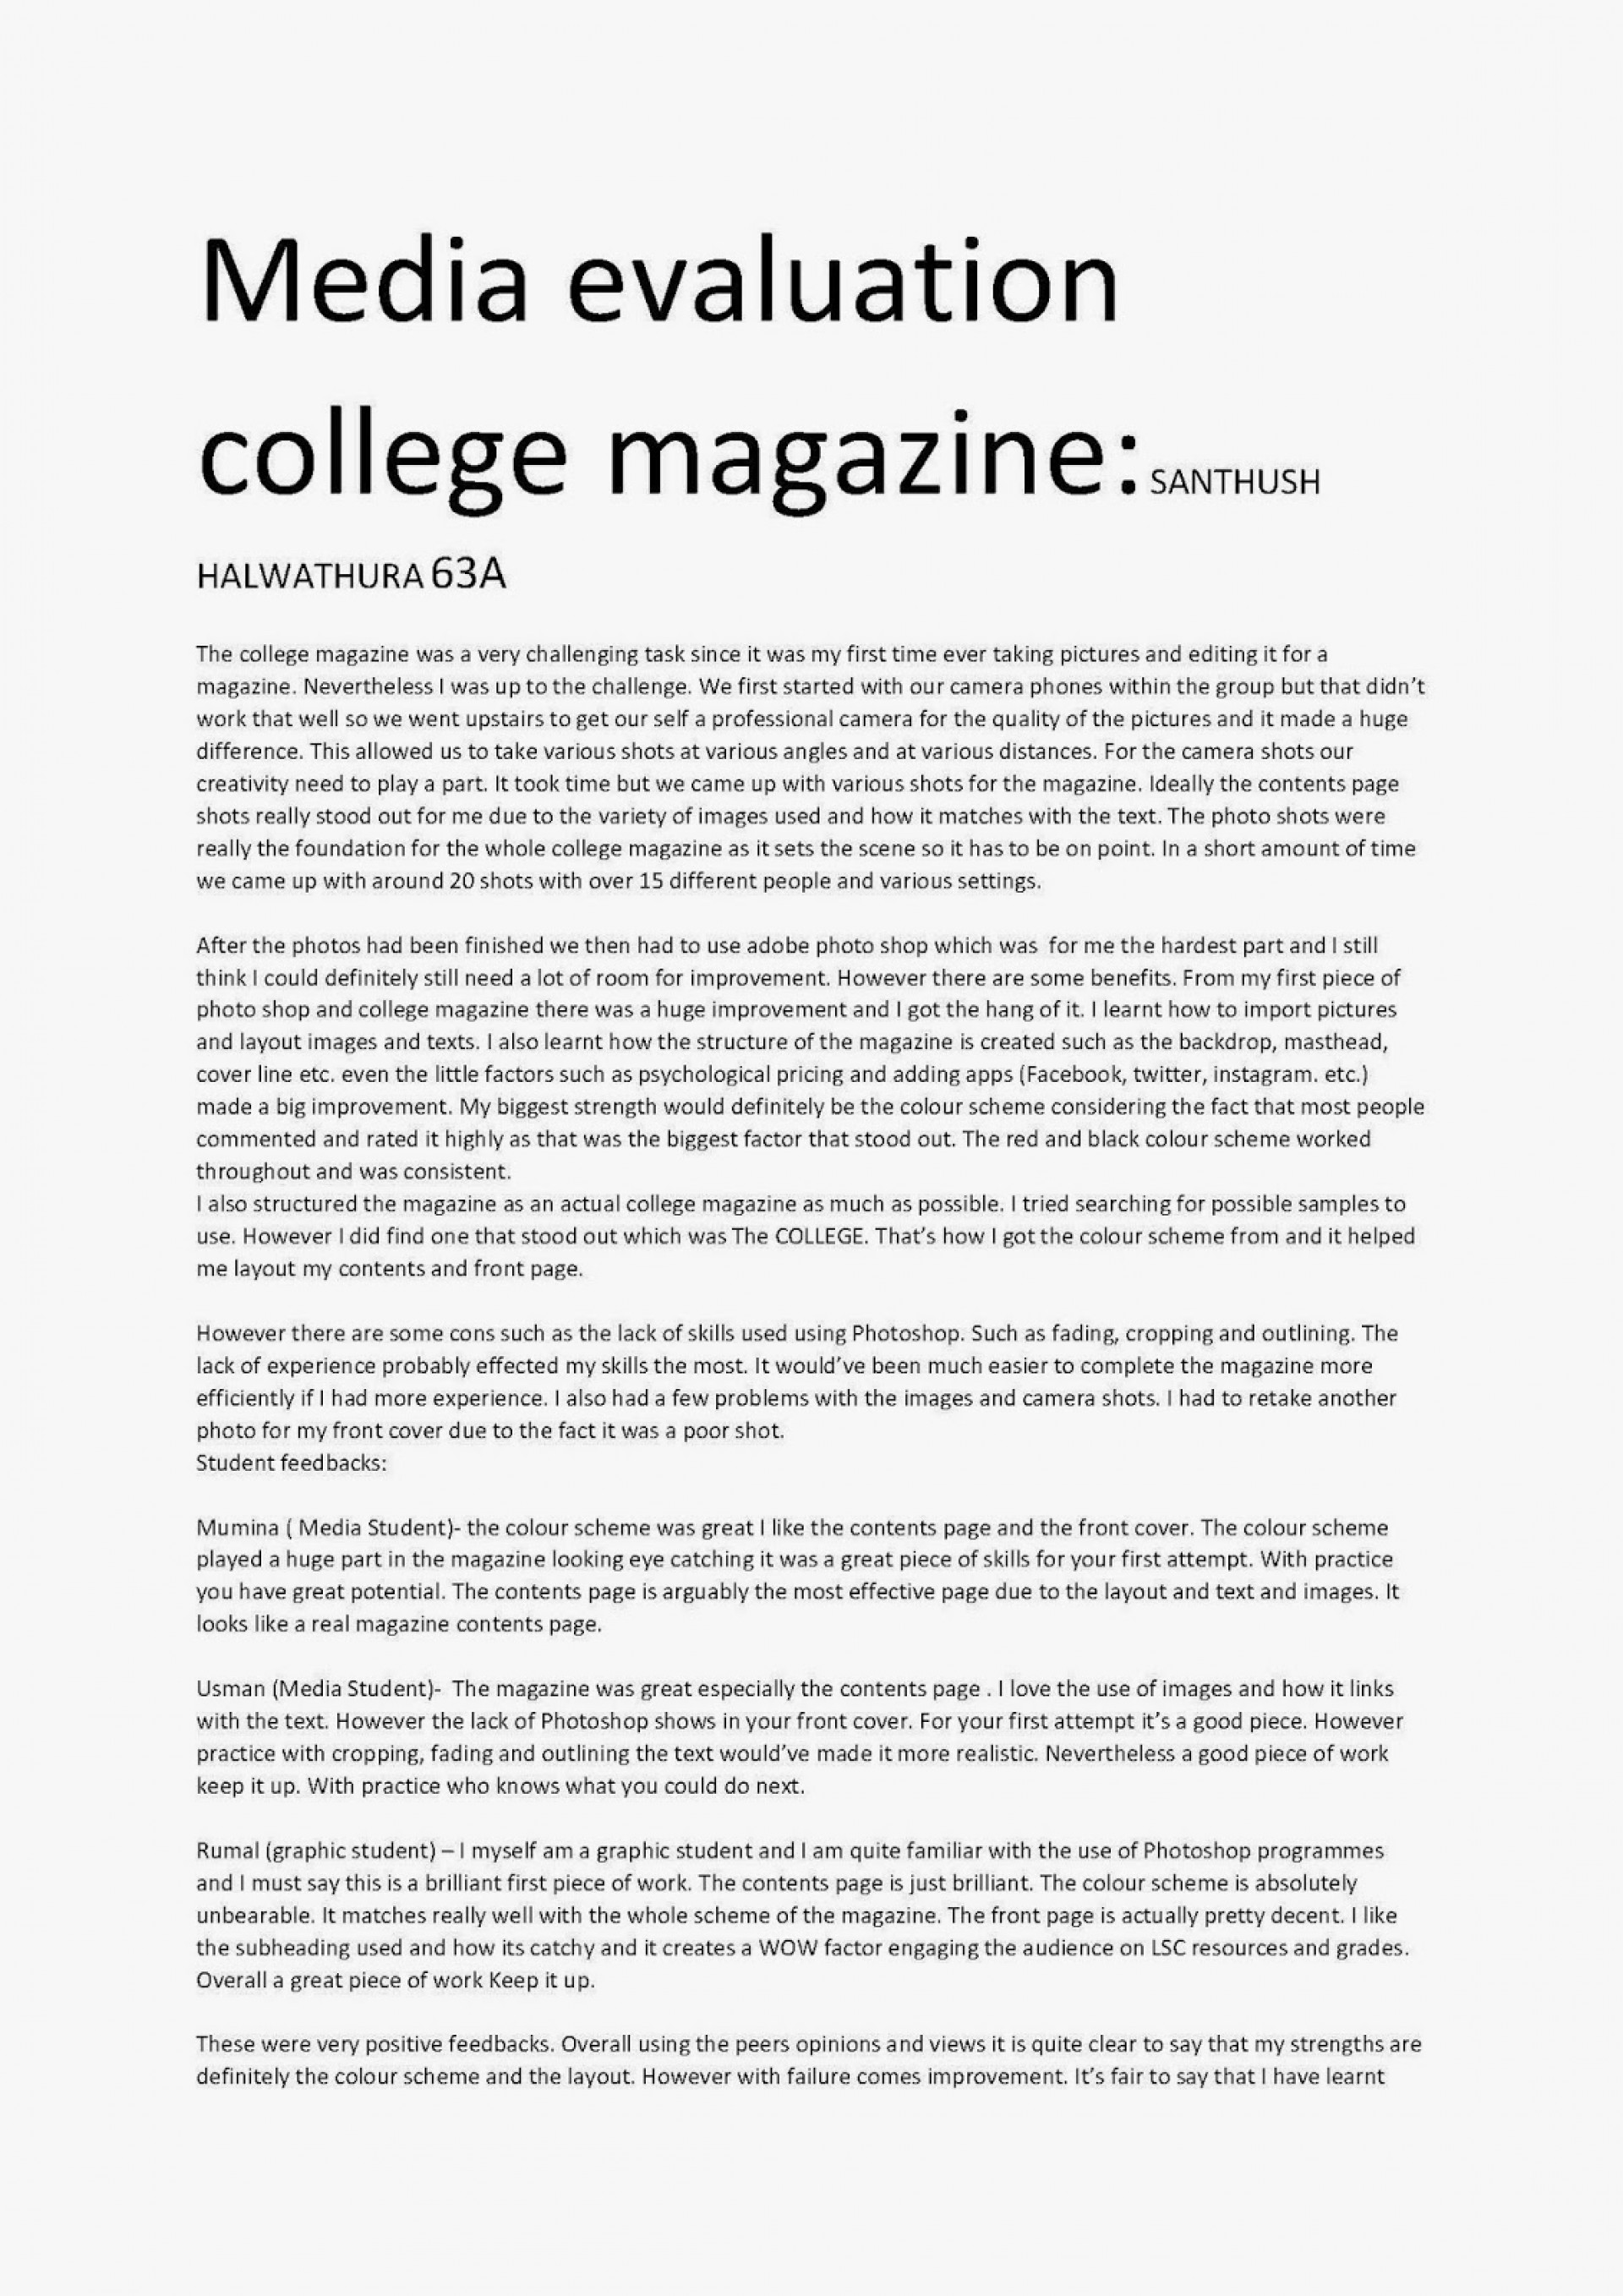 016 Mediaevaluationcollegemagazine Page 1 Evaluation Essay Amazing Example Pdf Examples For Students 1920